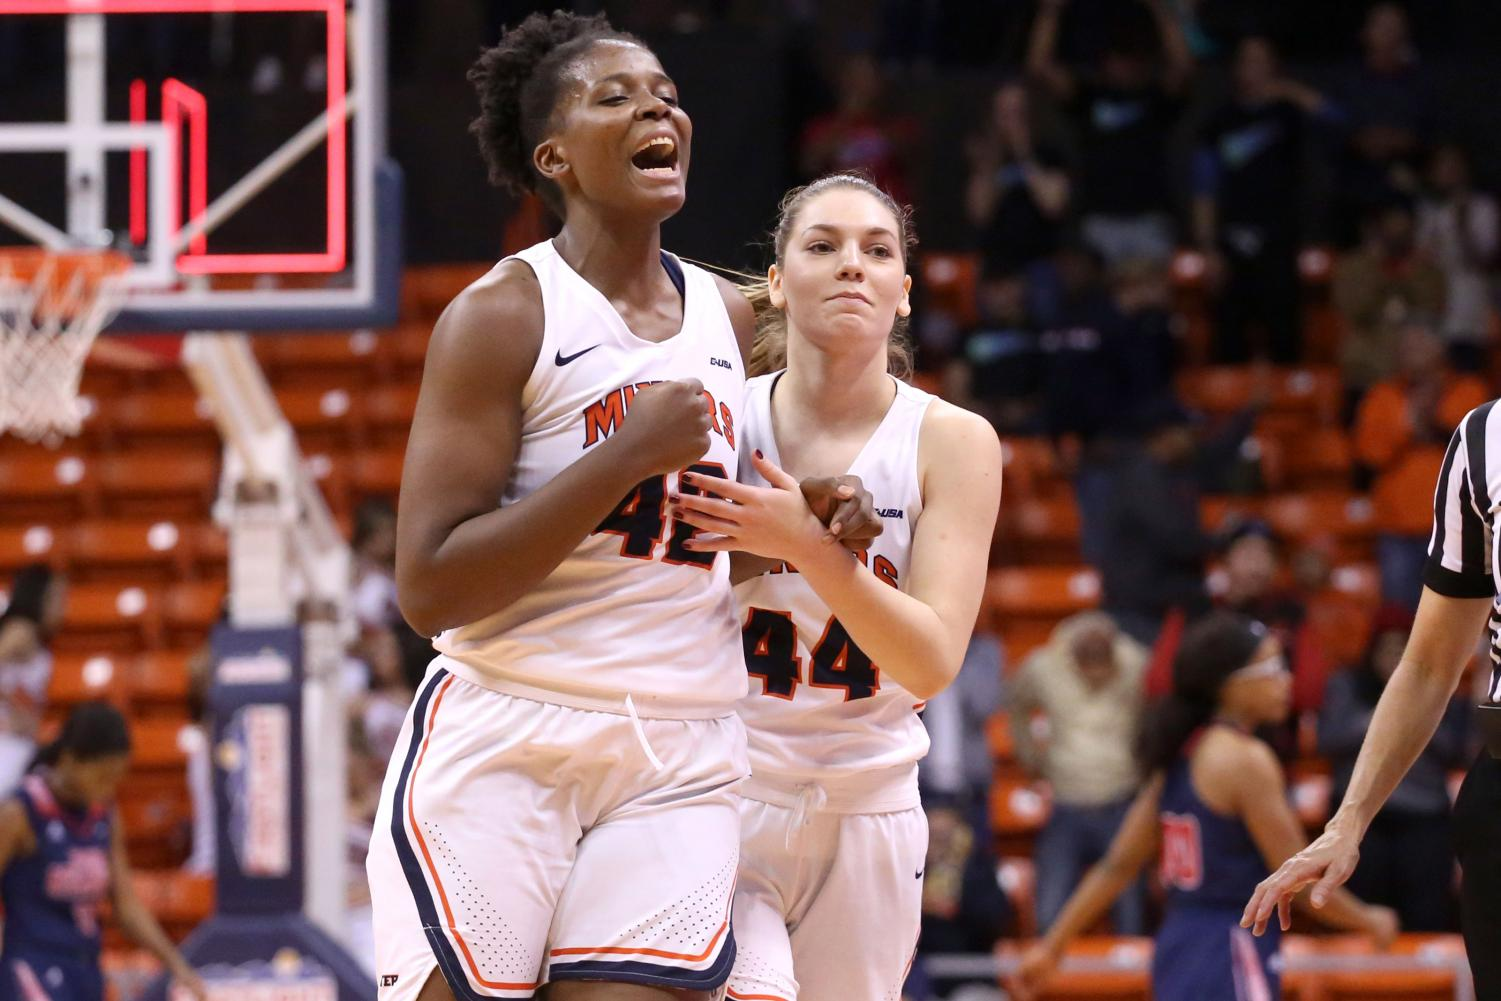 Senior forward Tamara Seda and sophomore guard Katarina Zec celebrate their win against the FAU Owls.